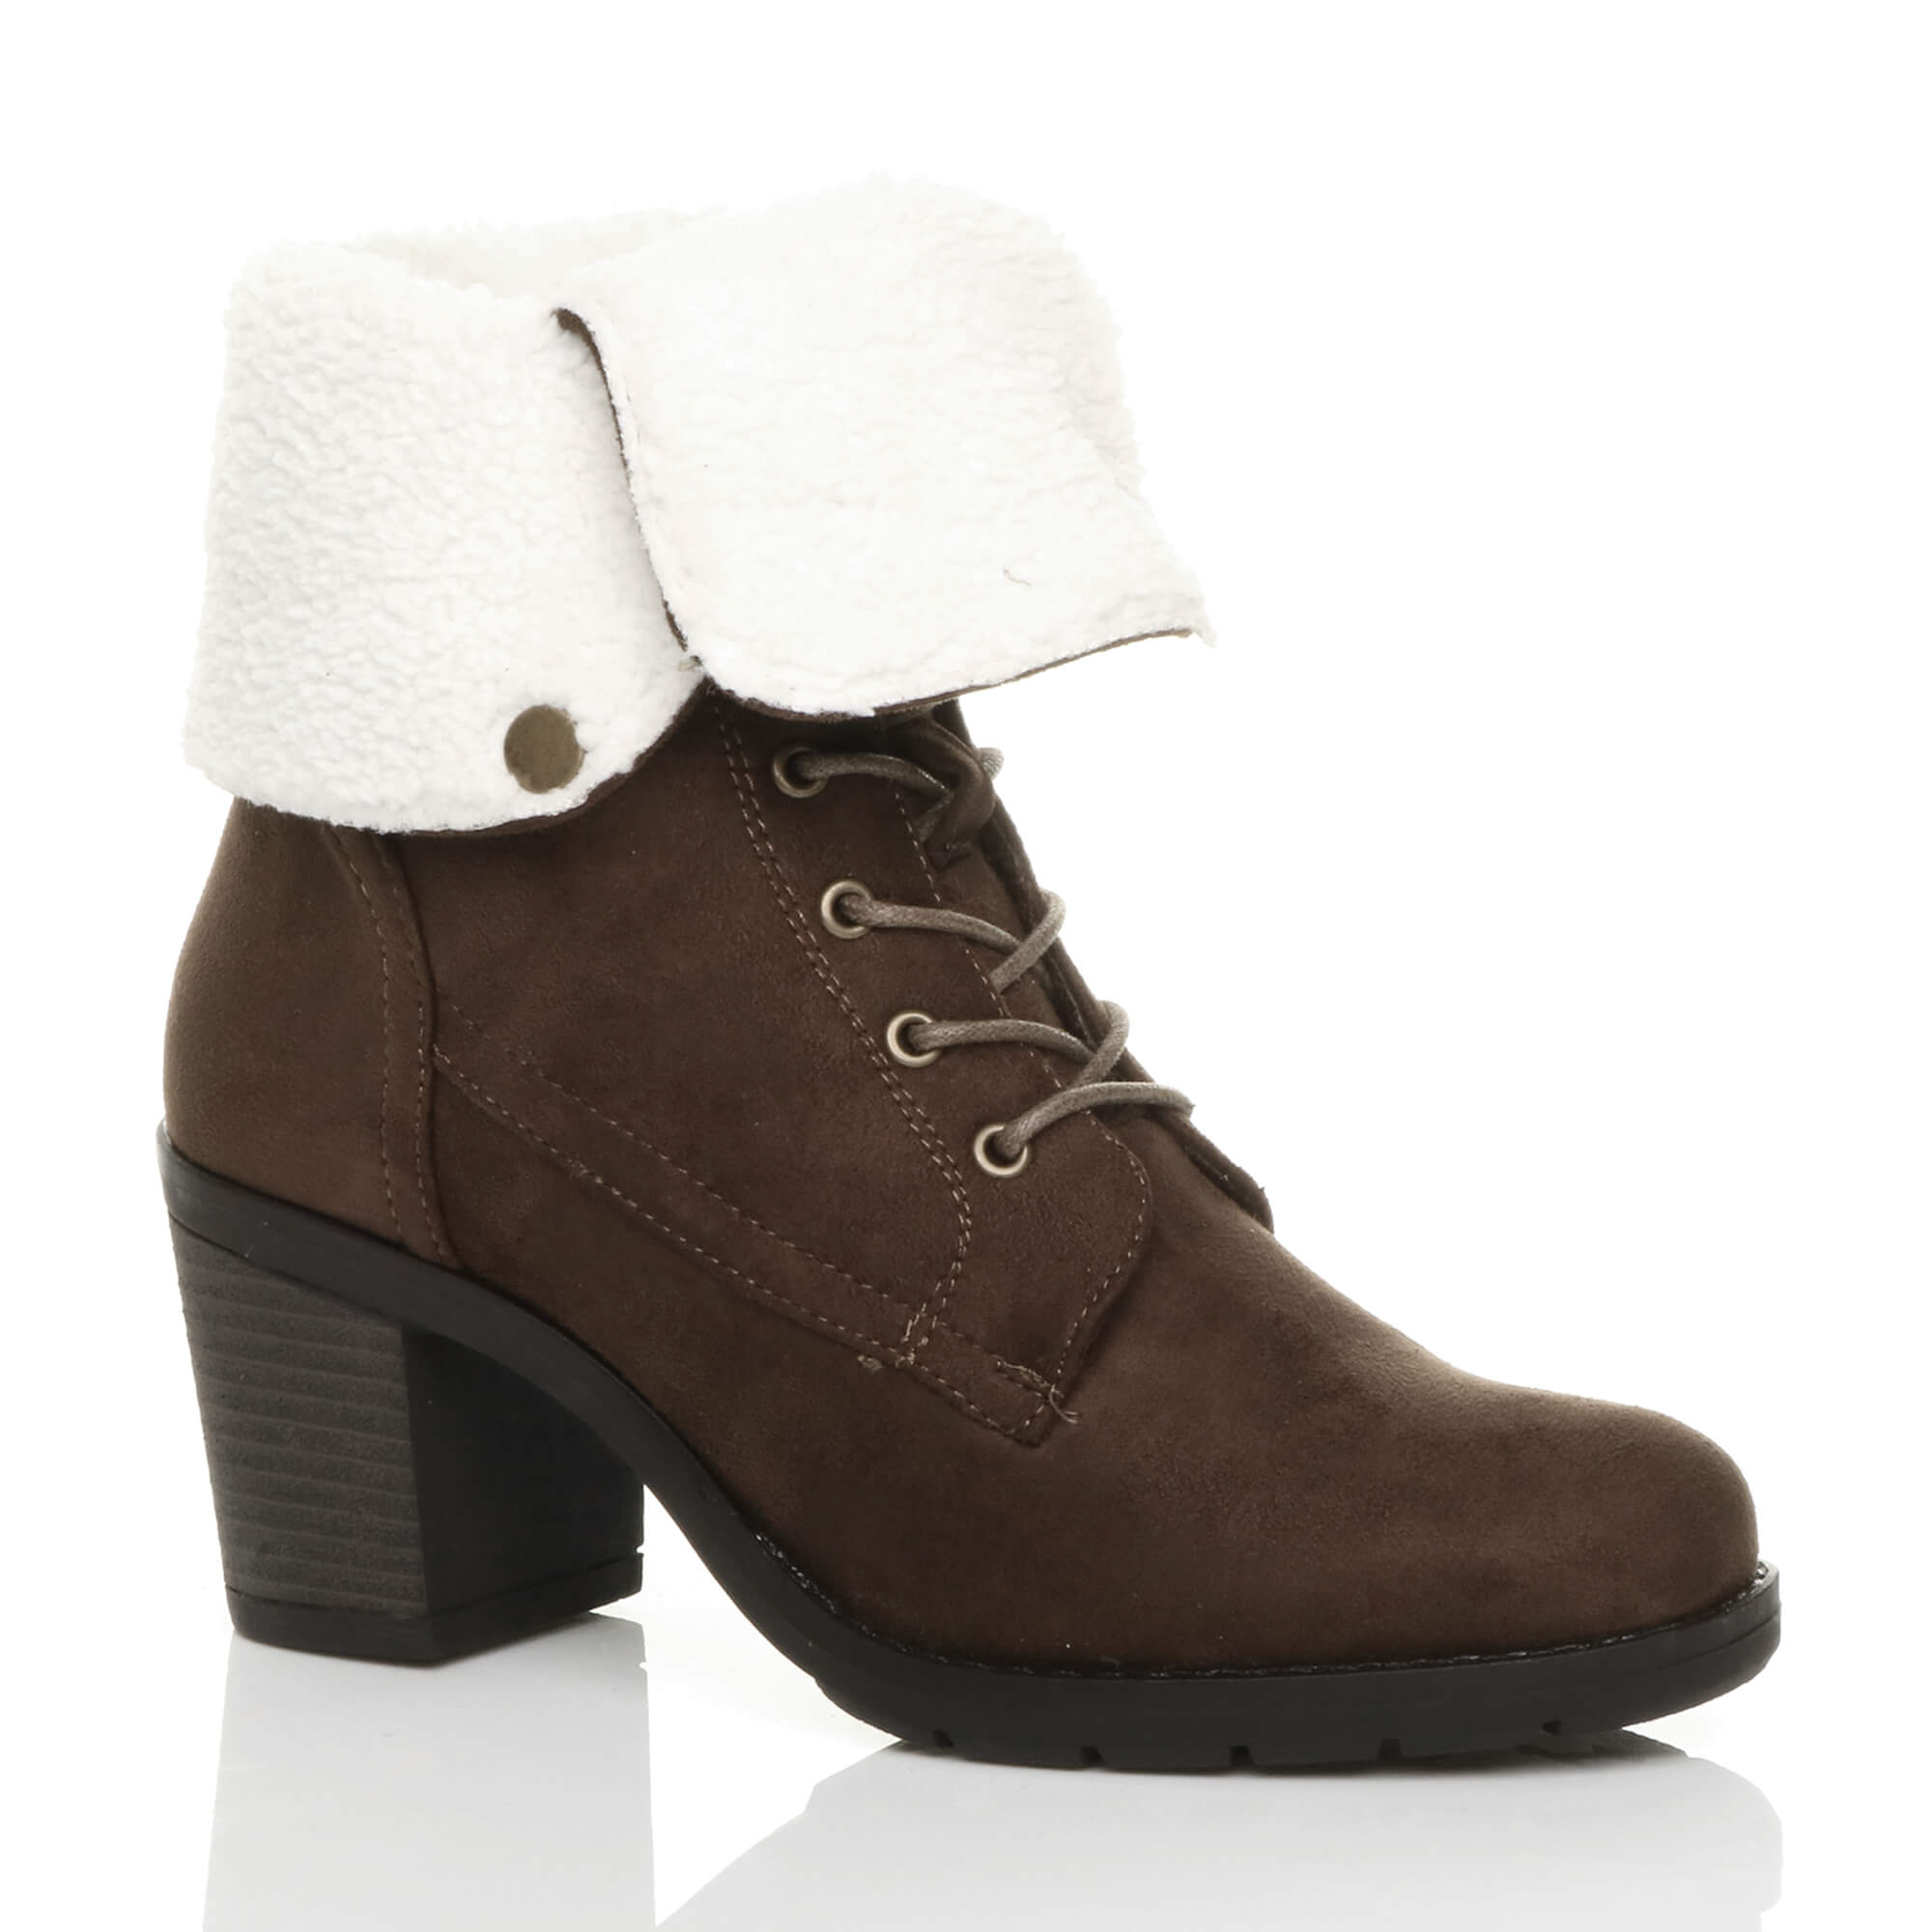 WOMENS-LADIES-MID-BLOCK-HEEL-FUR-COLLAR-LINED-LACE-UP-WINTER-ANKLE-BOOTS-SIZE